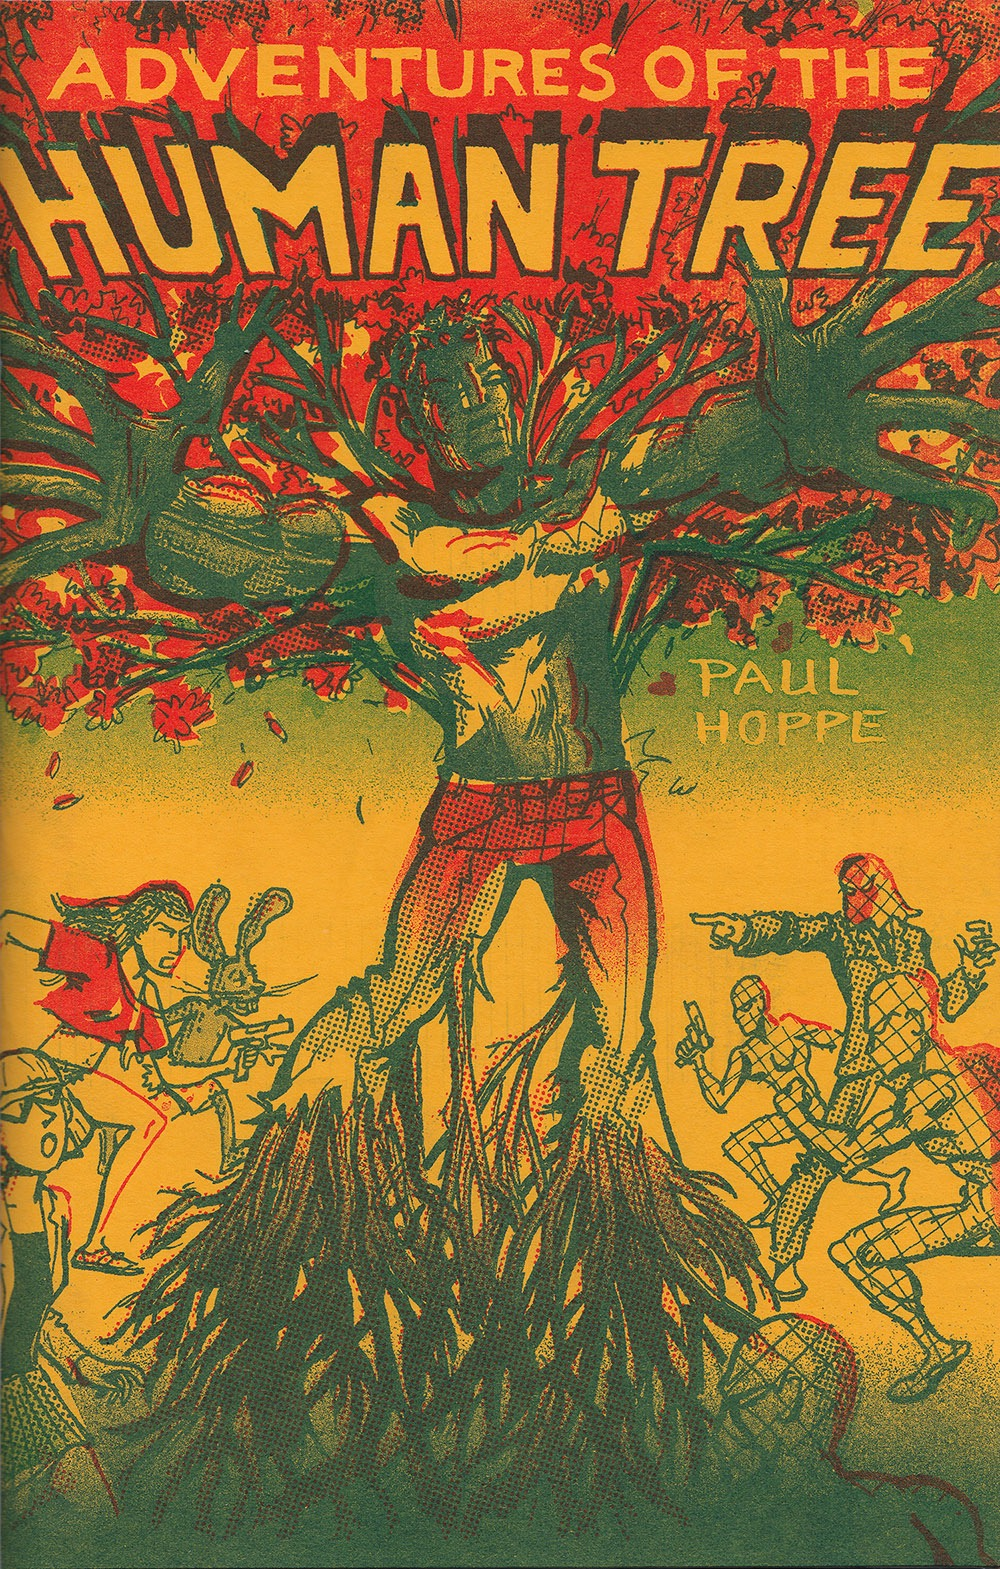 HumanTree_Cover_Riso_Print_Smaller.jpg